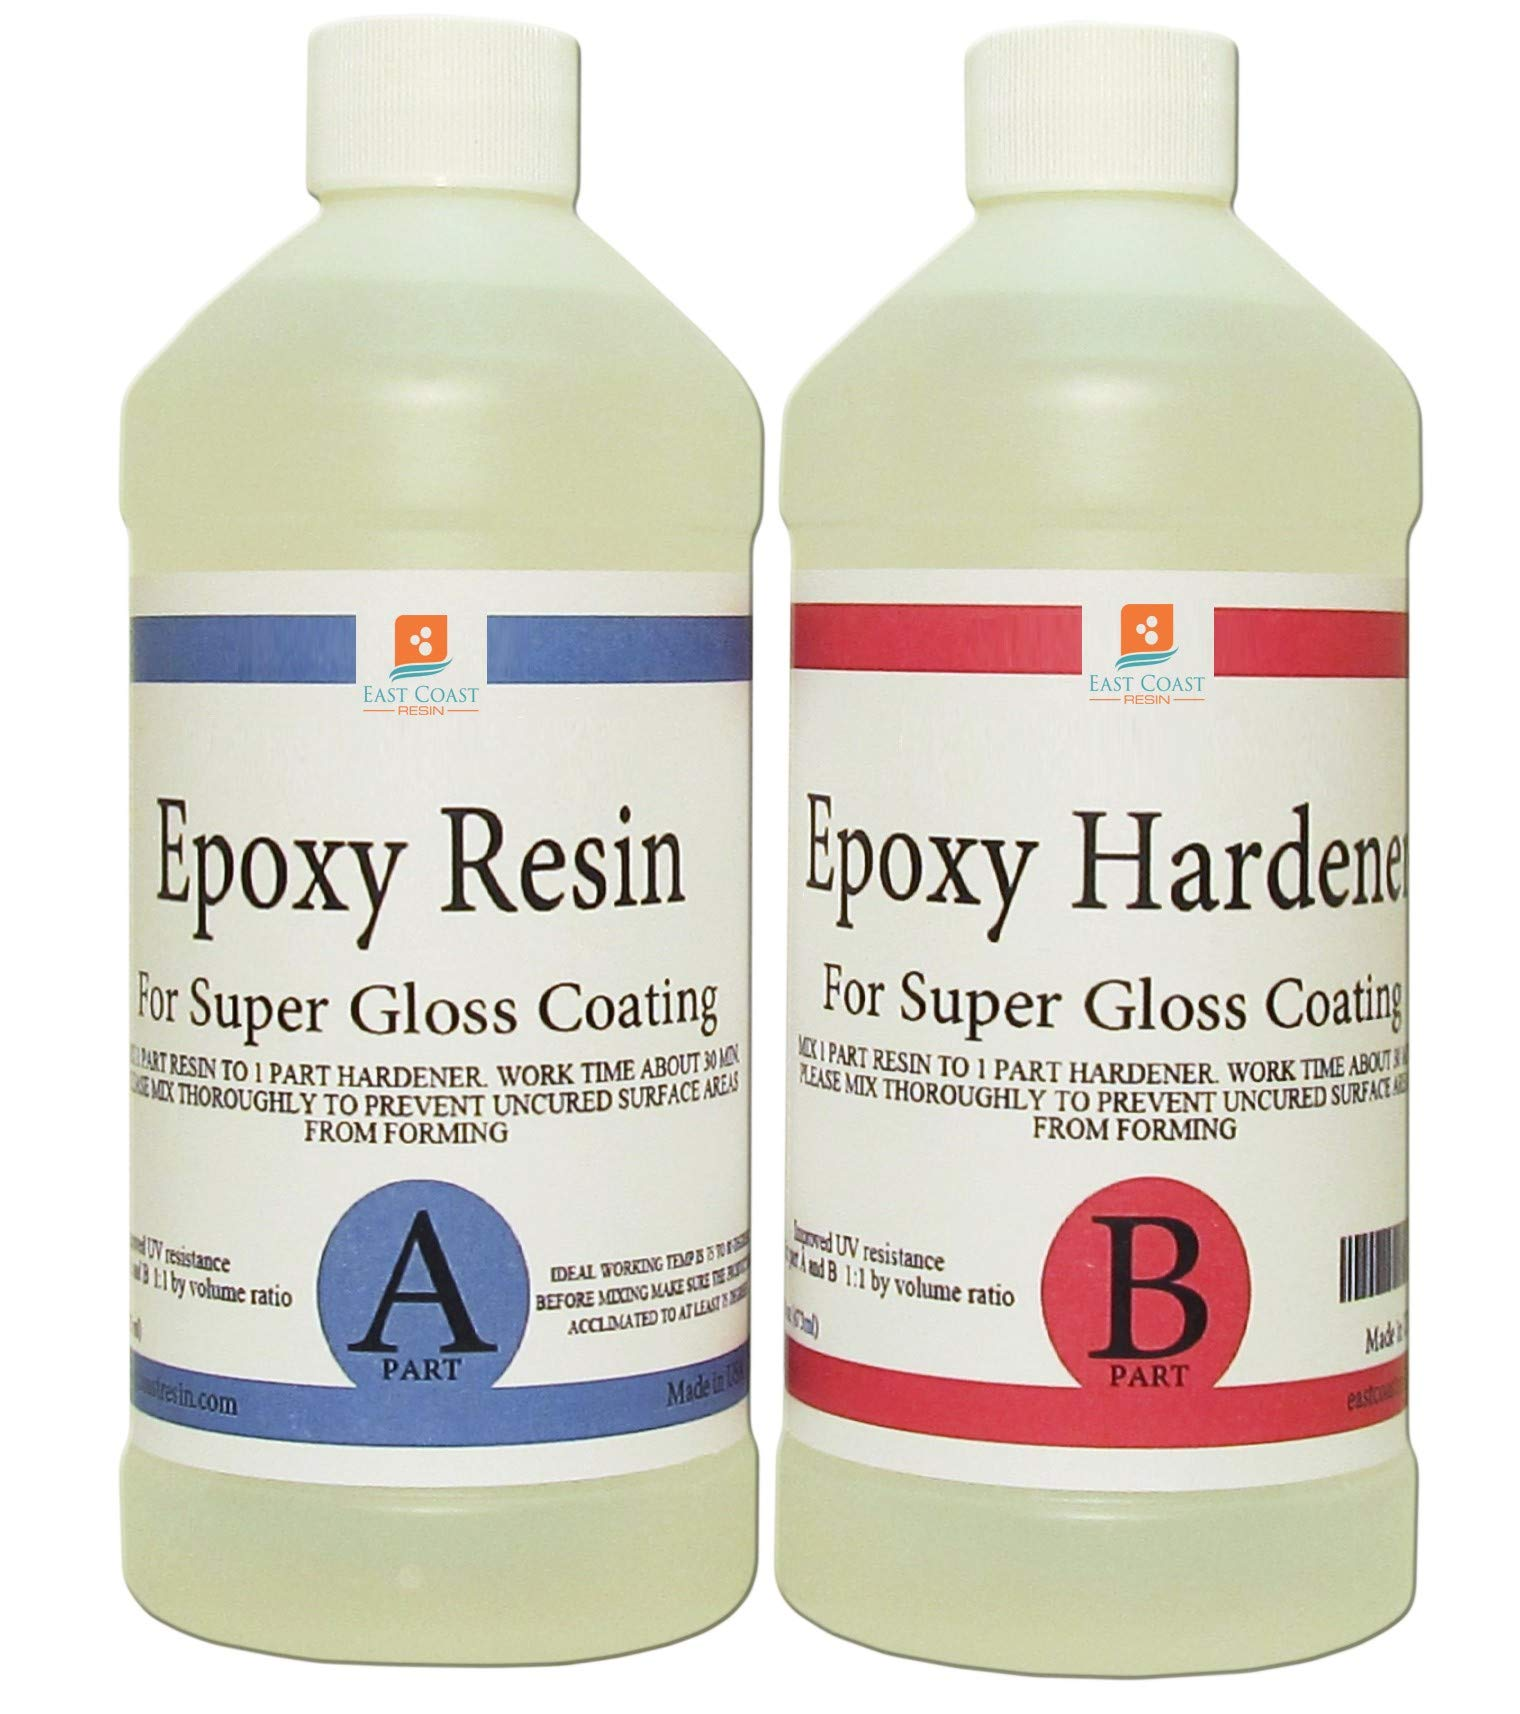 EPOXY RESIN CRYSTAL CLEAR 16 oz Kit. FOR SUPER GLOSS COATING AND TABLETOPS by East Coast Resin